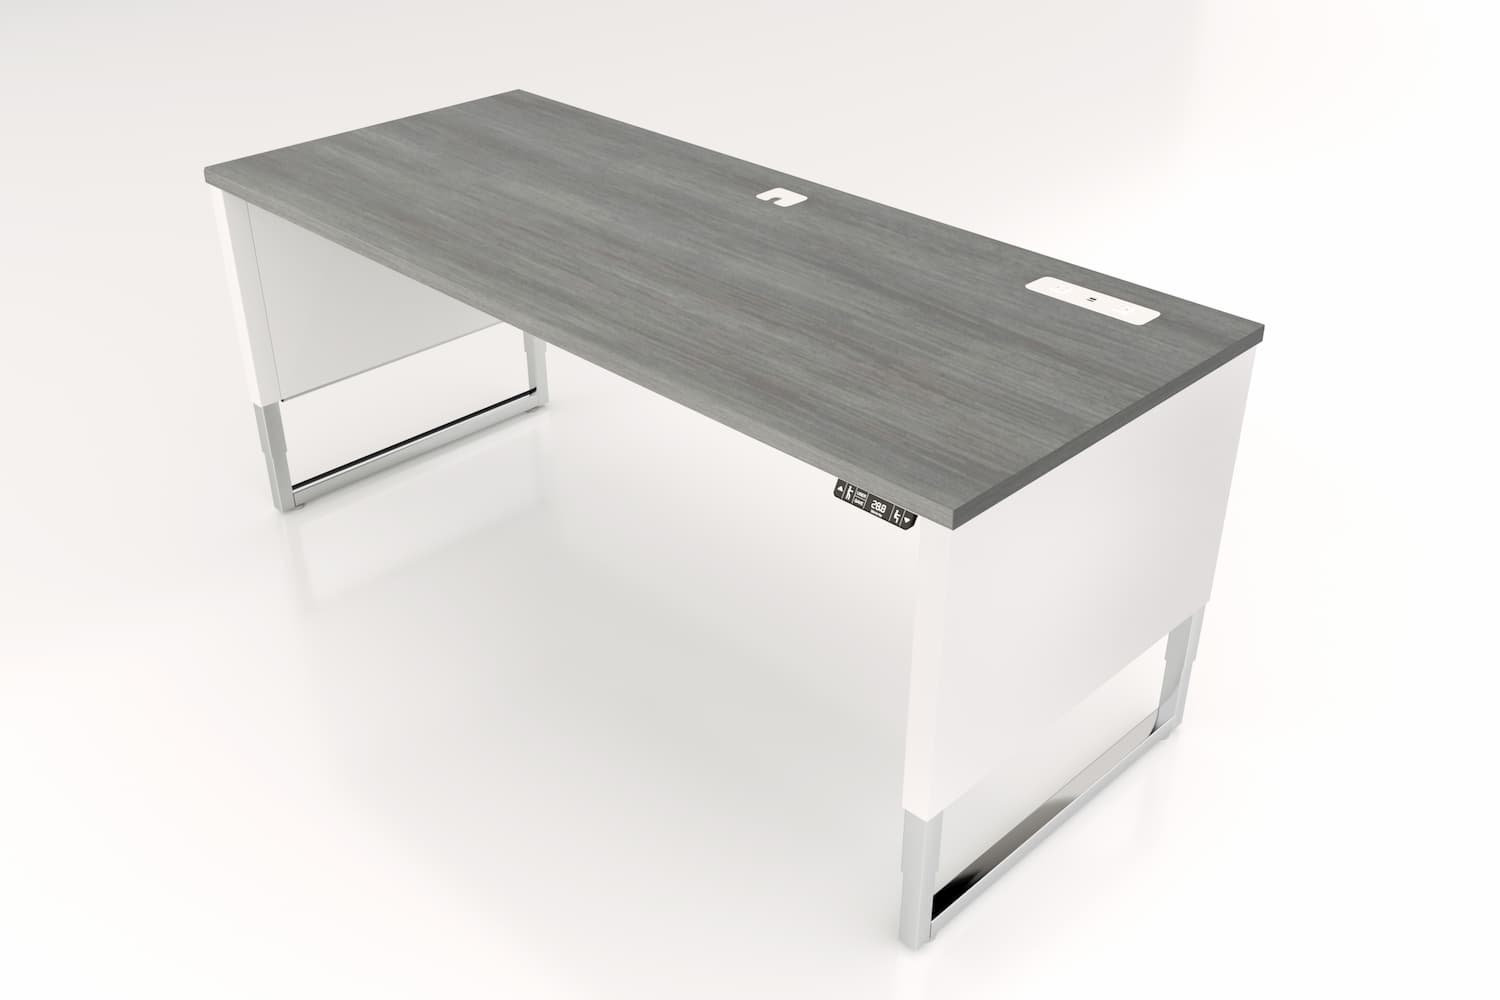 Advent-Desk-ADV-7230-WH-Custom-Top-11